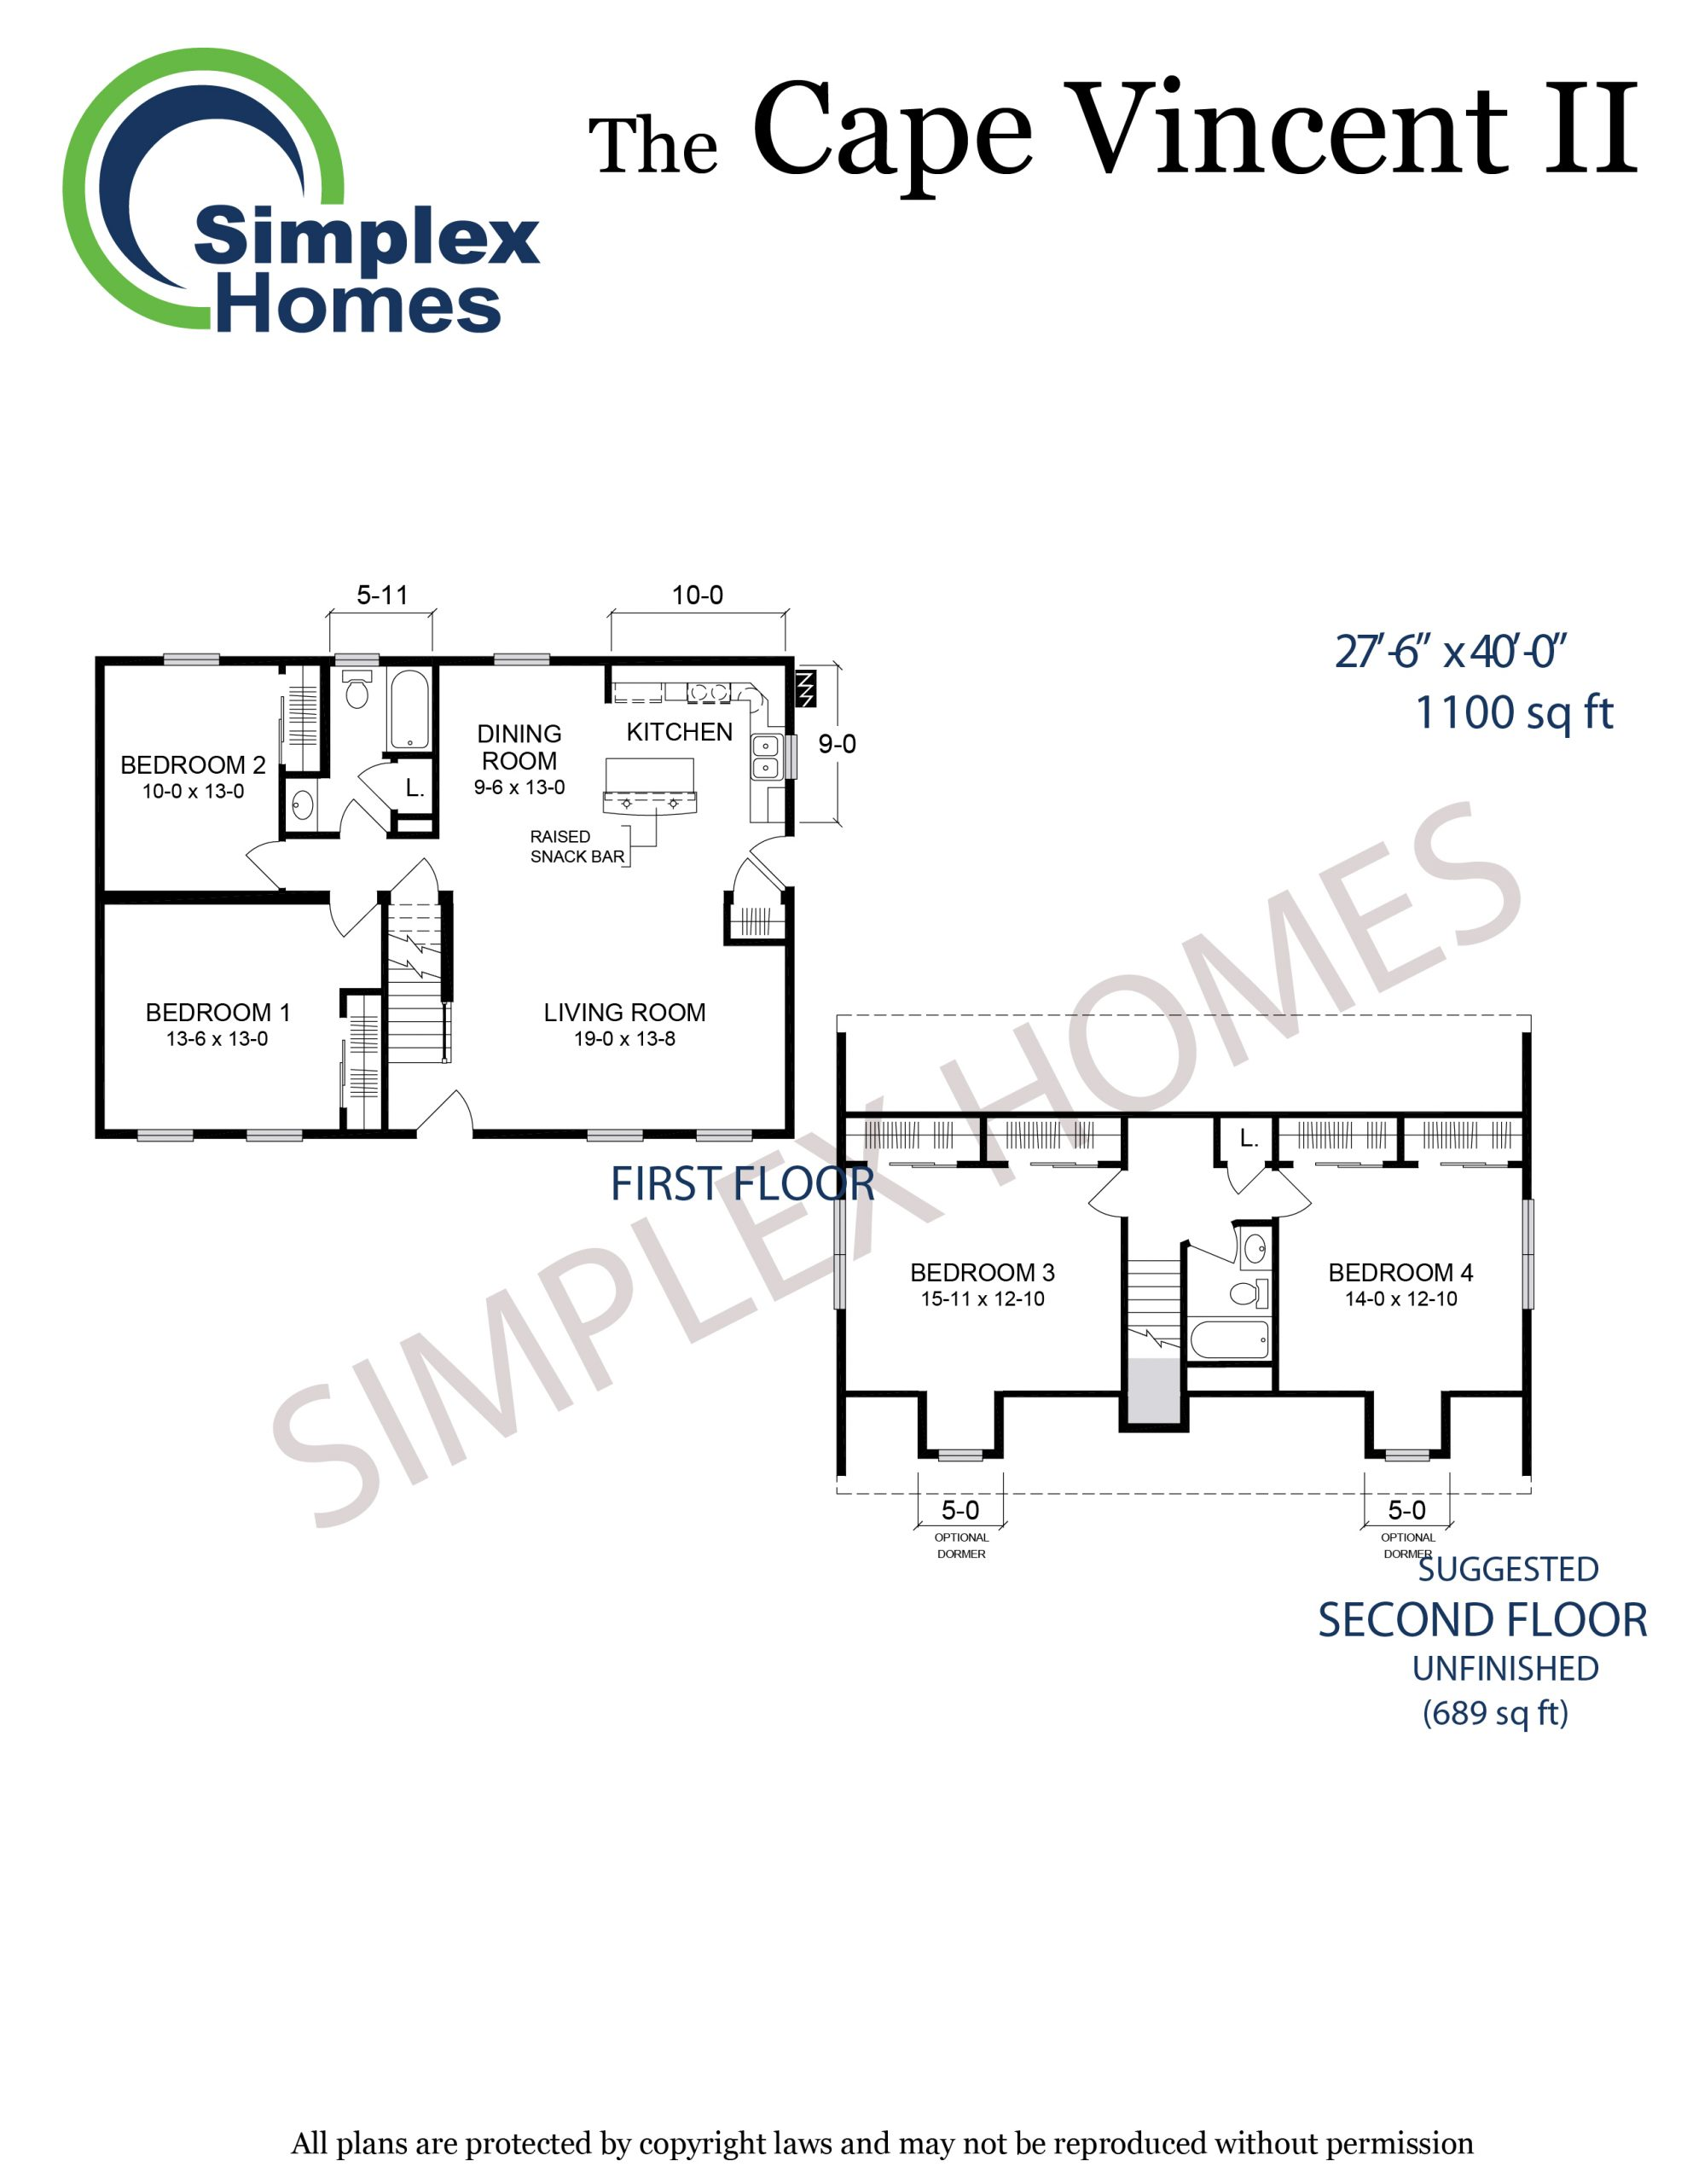 Cape Vincent II floor plan